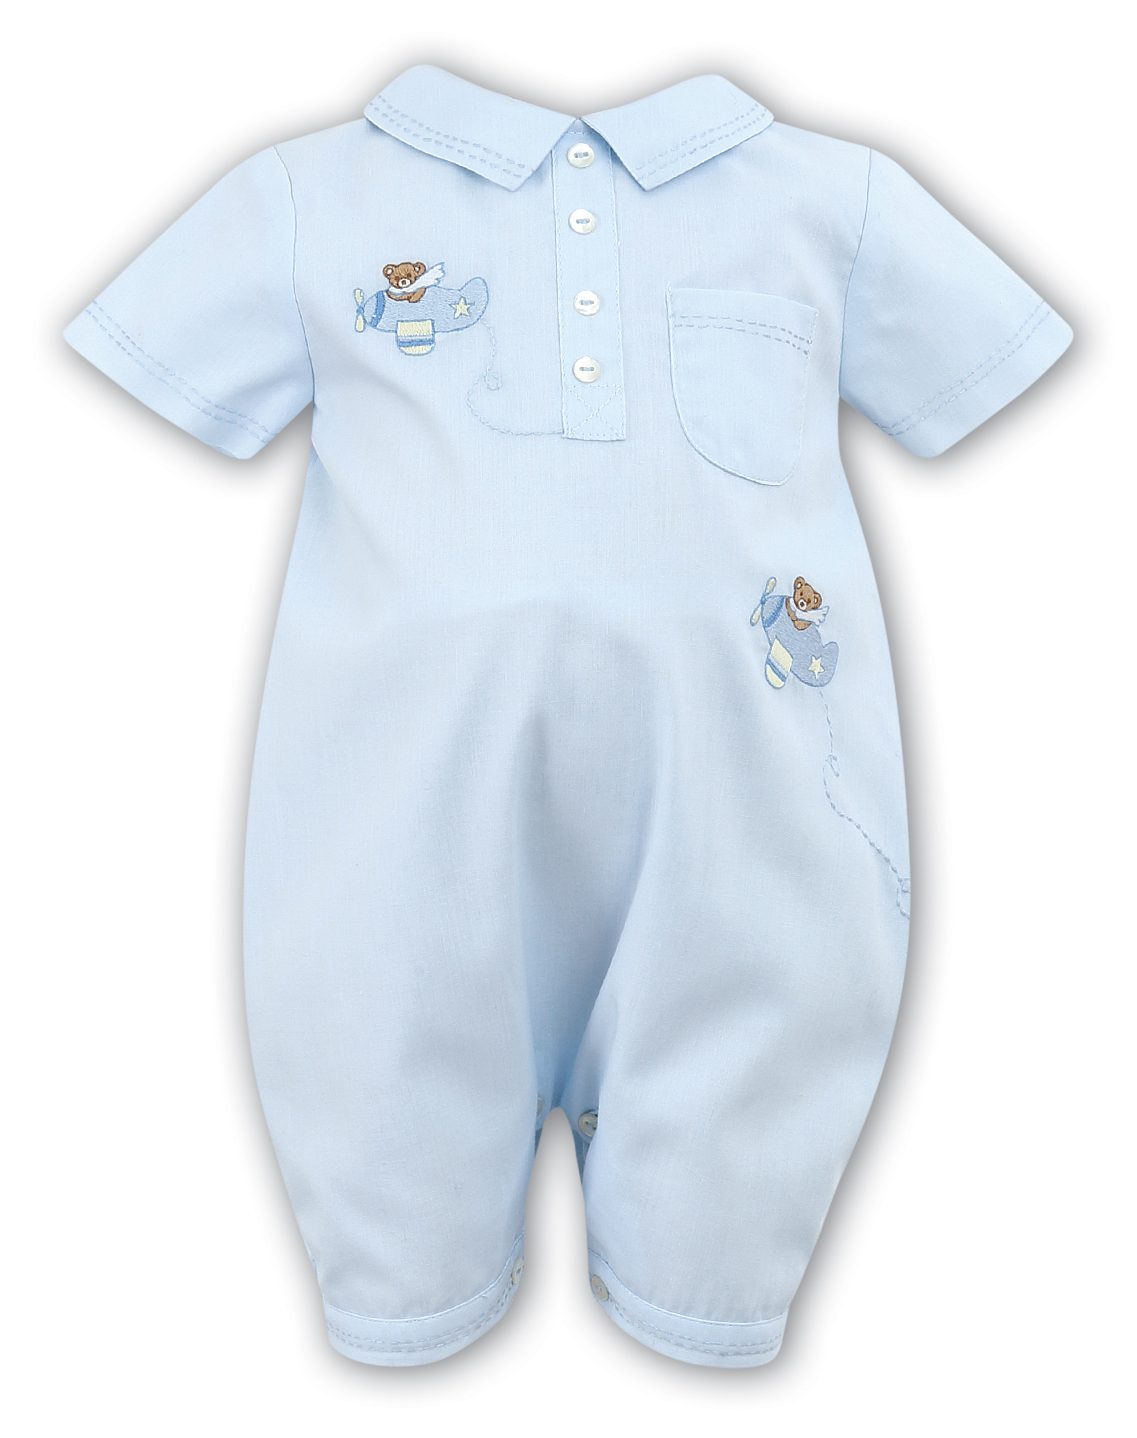 Baby Clothes Wholesale. Trade Kids Wear baby clothing wholesale range includes baby boy and girl jackets, dungarees set, cardigan, 2 piece, All In One, Tights, Socks, Shoes, pyjamas and others. We source quality baby wear from UK and Asia. We have baby products from new born to 36 months.